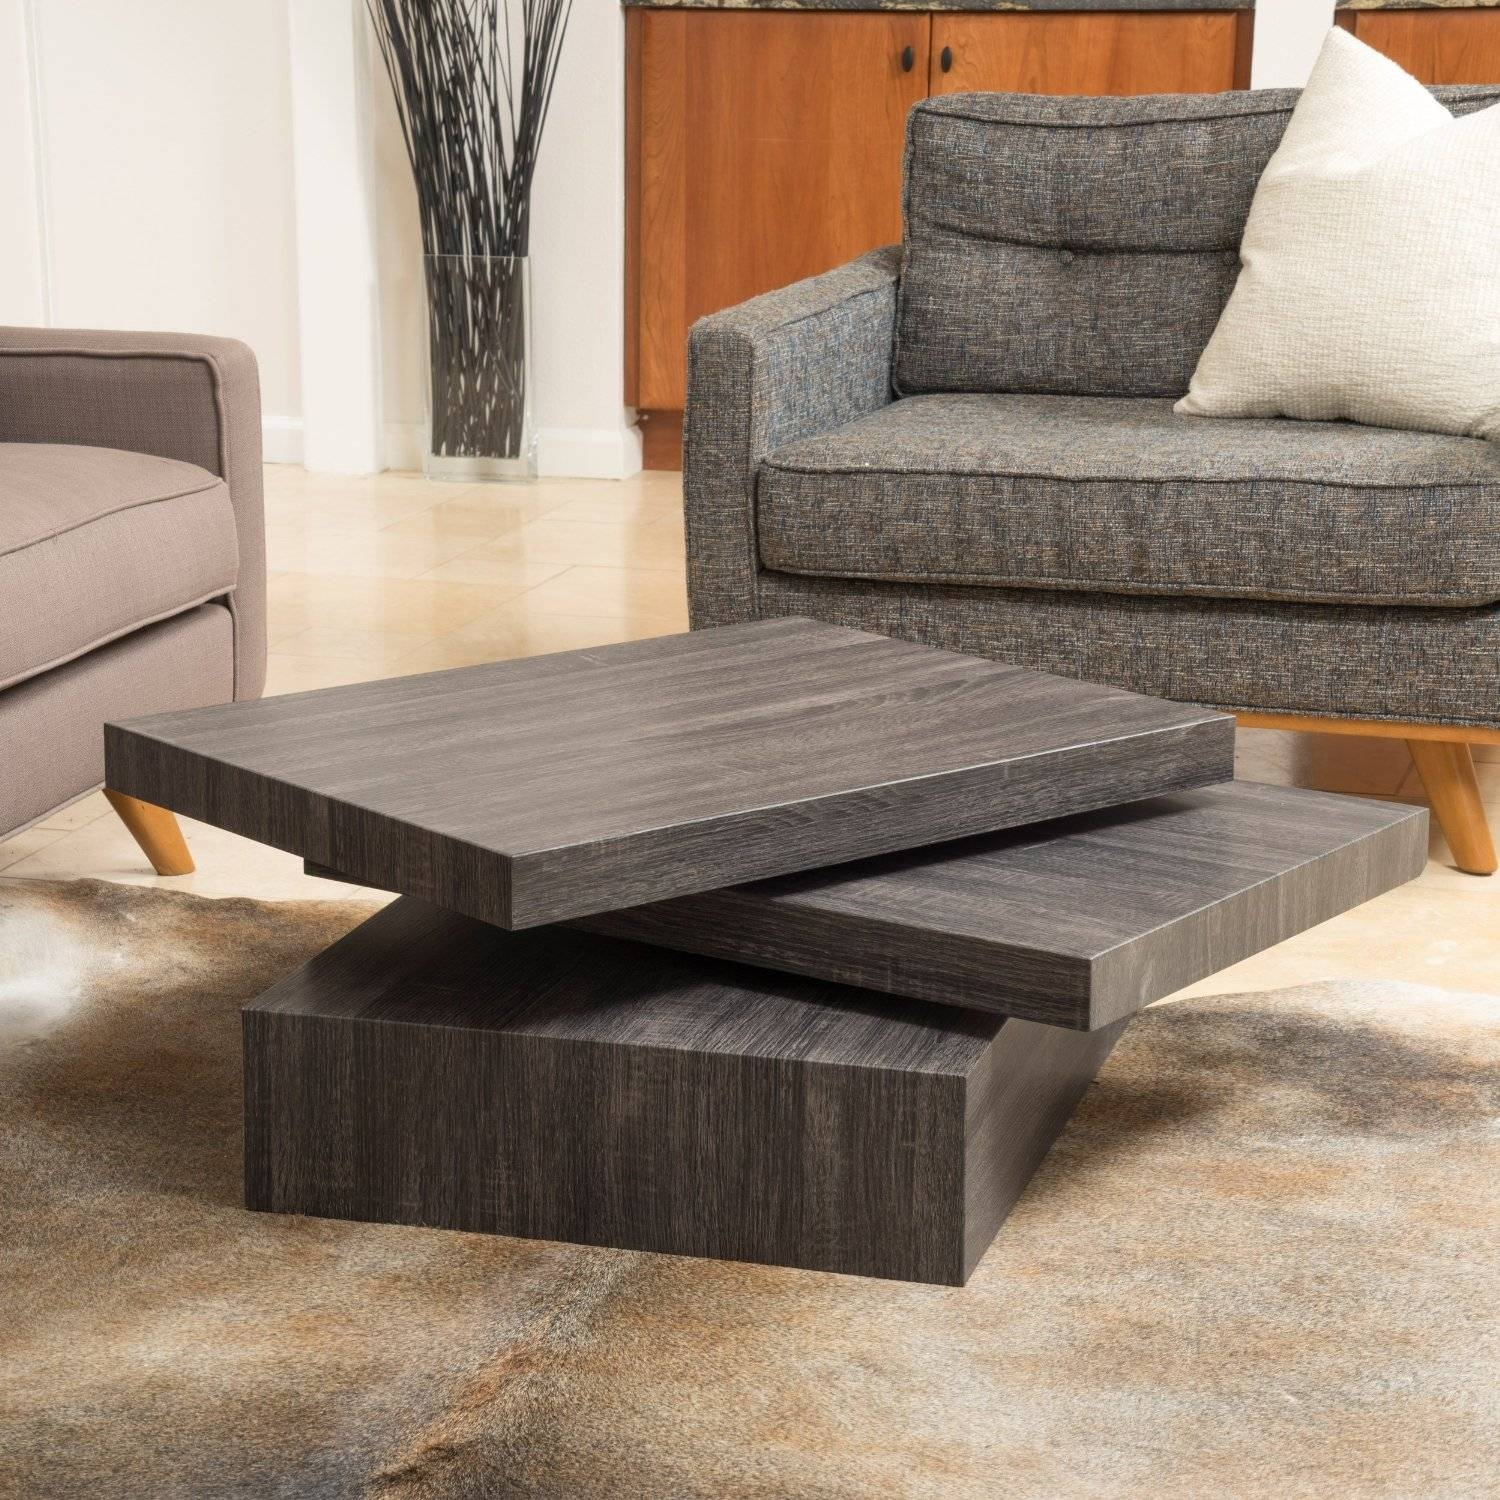 Cheap Coffee Tables Under $100 That Work For Every Style within Cheap Coffee Tables With Storage (Image 4 of 30)